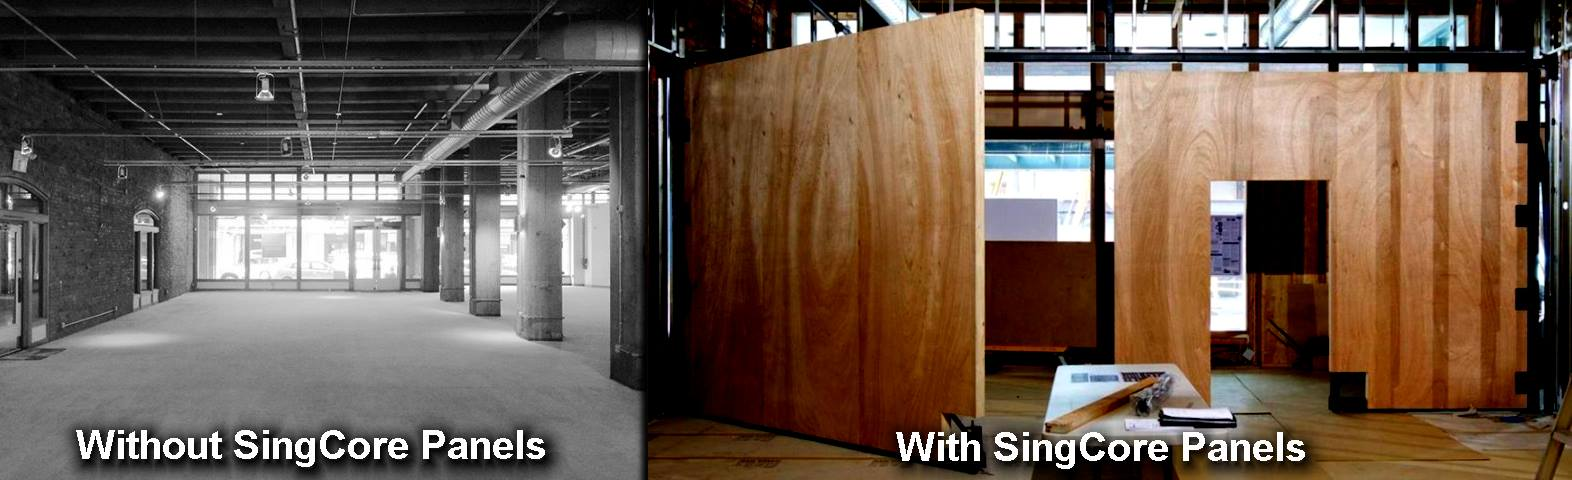 Seattle Design Center AIA Before After Sing Core